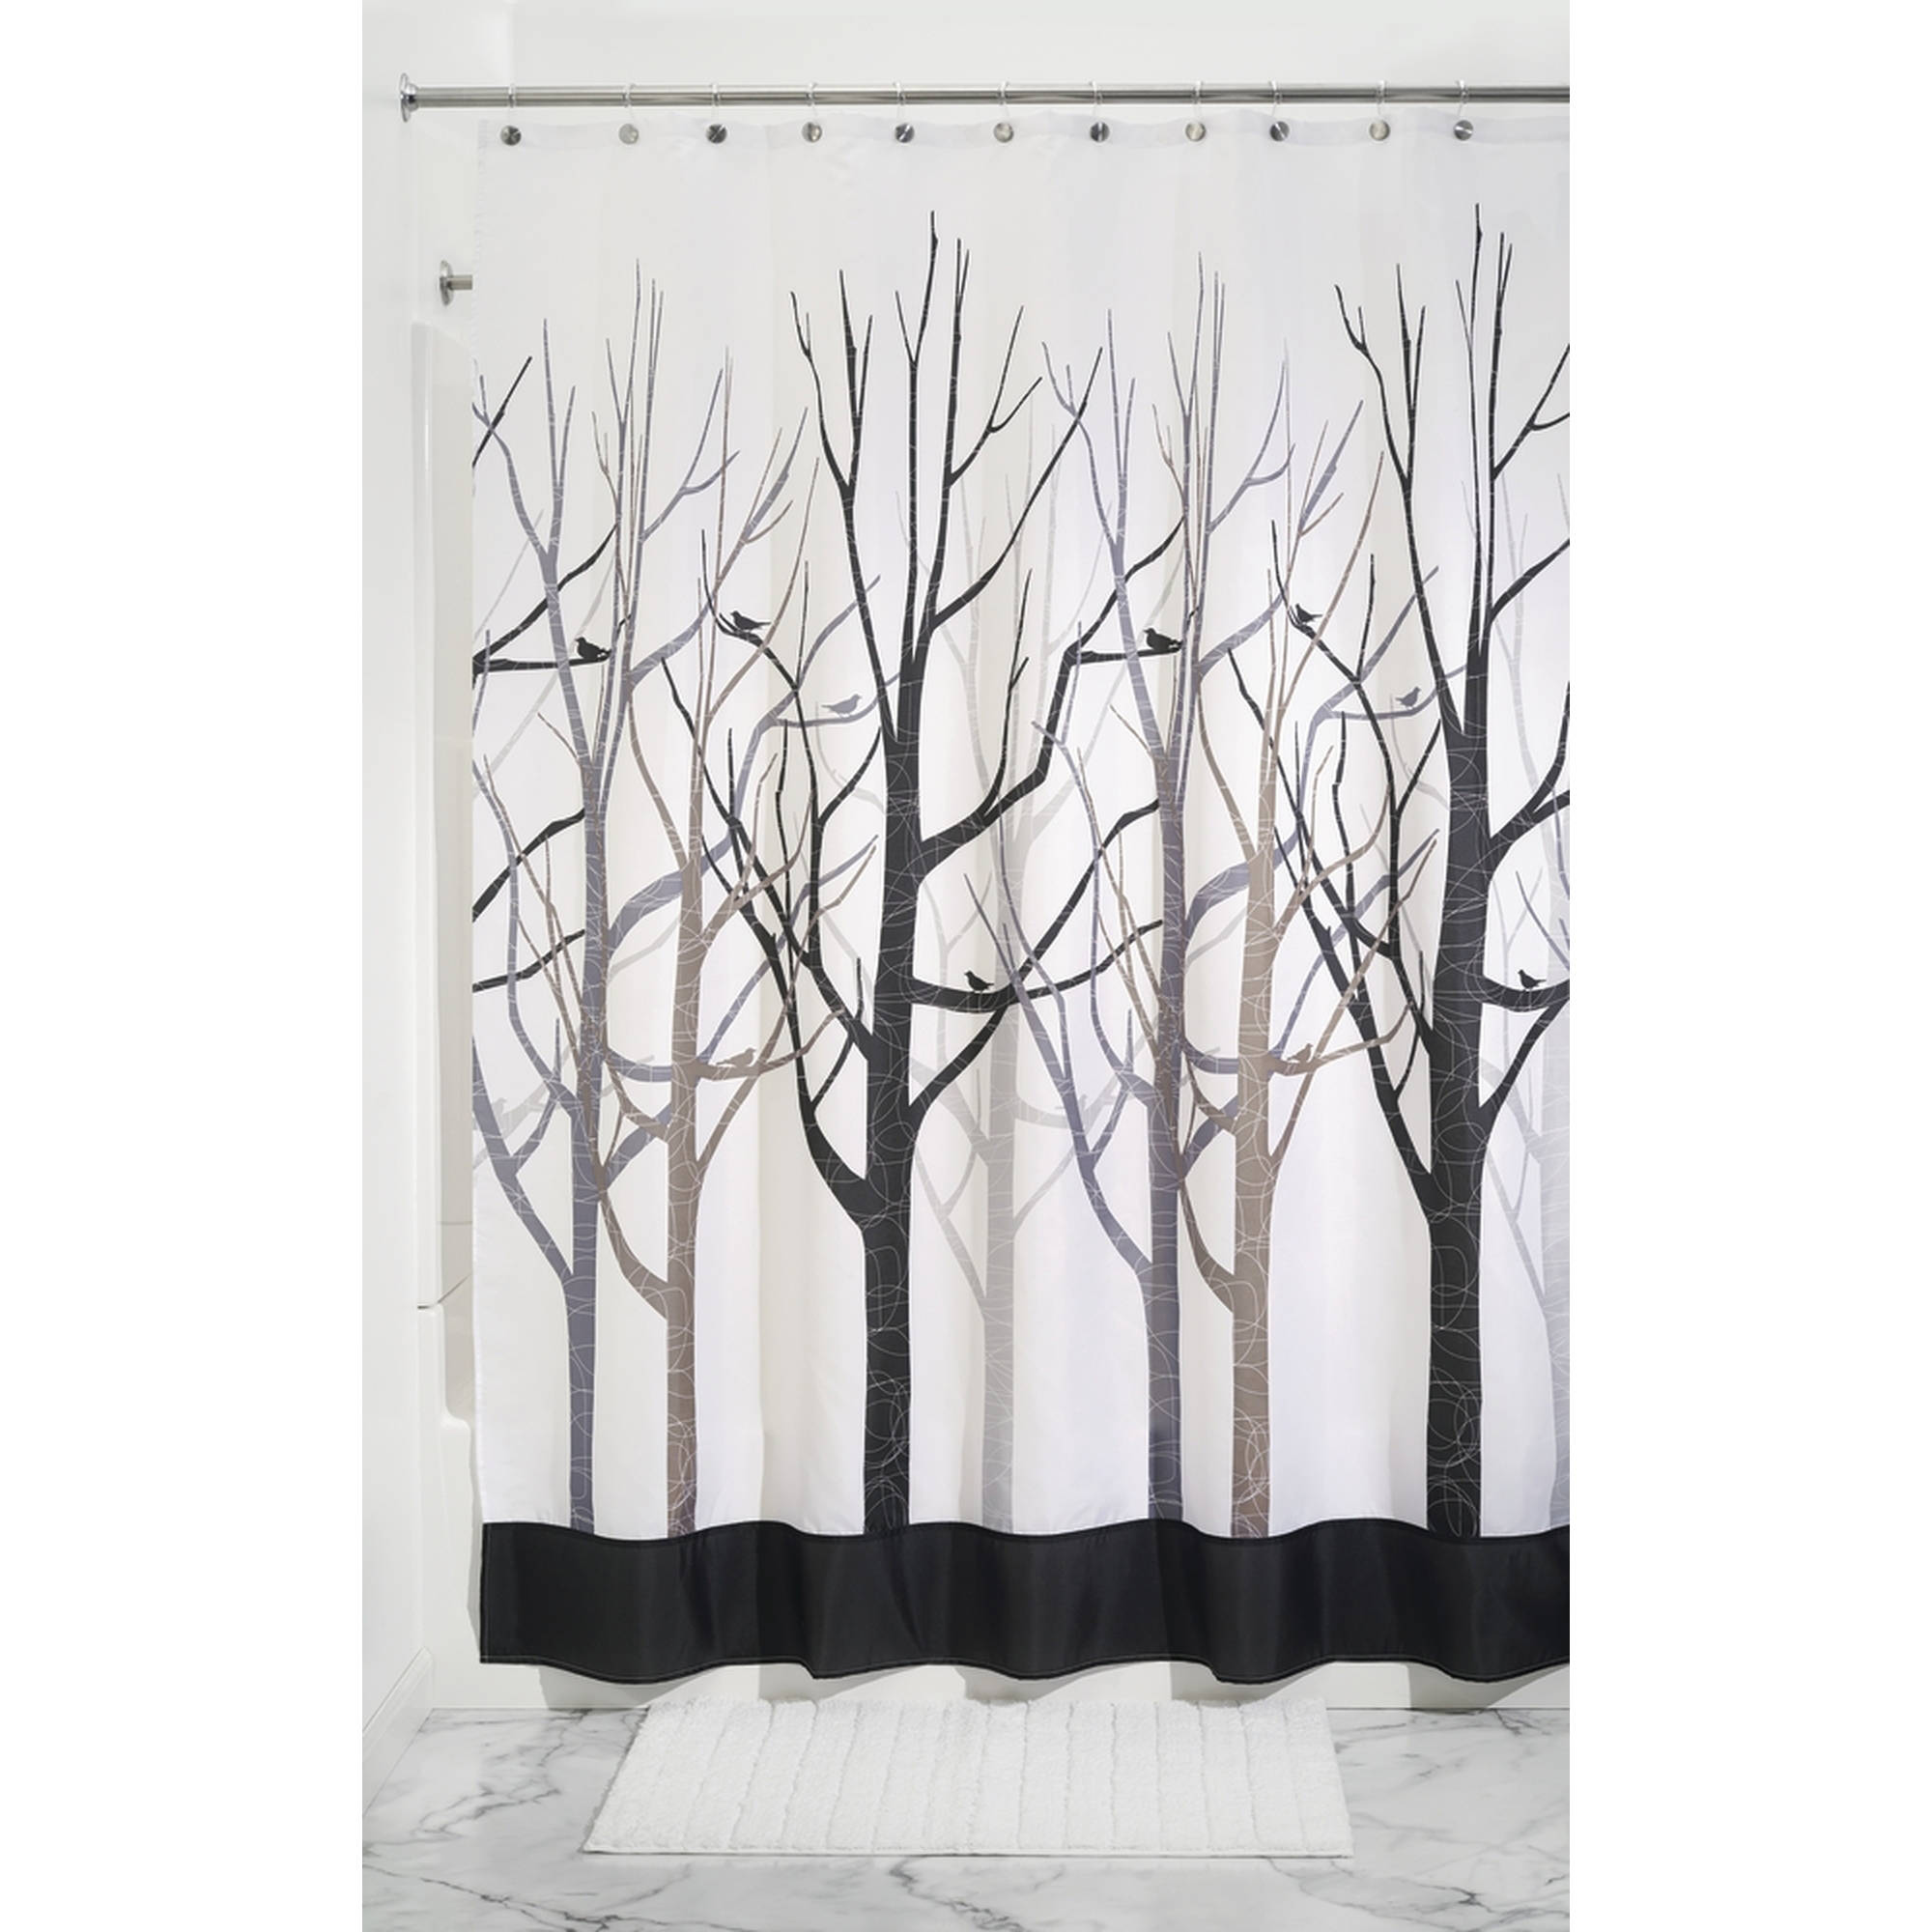 InterDesign Forest Fabric Shower Curtain, Various Sizes